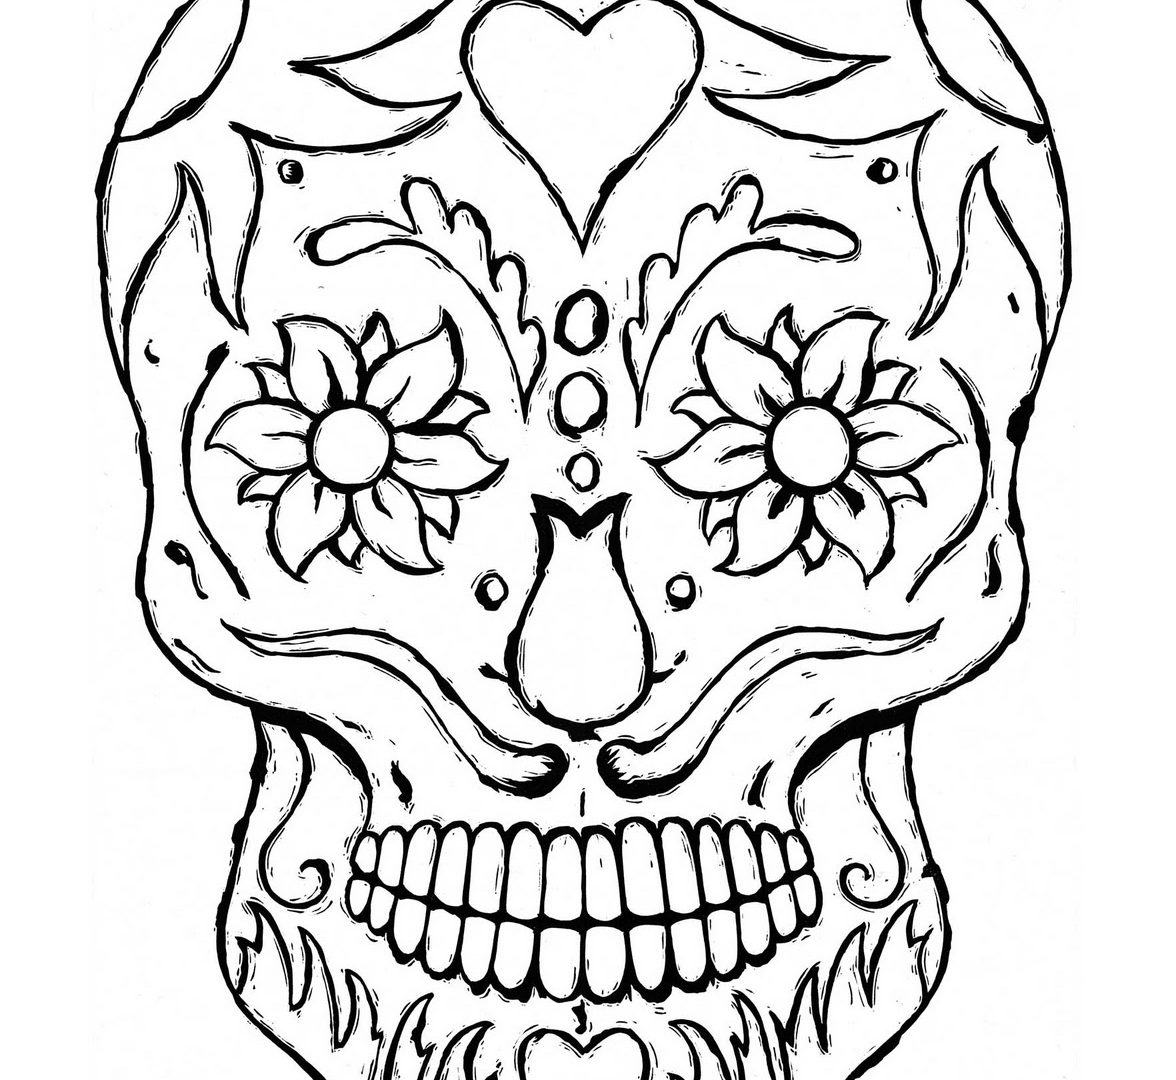 1176x1080 Coloring Pages For Kids To Print Out Colouring Free General